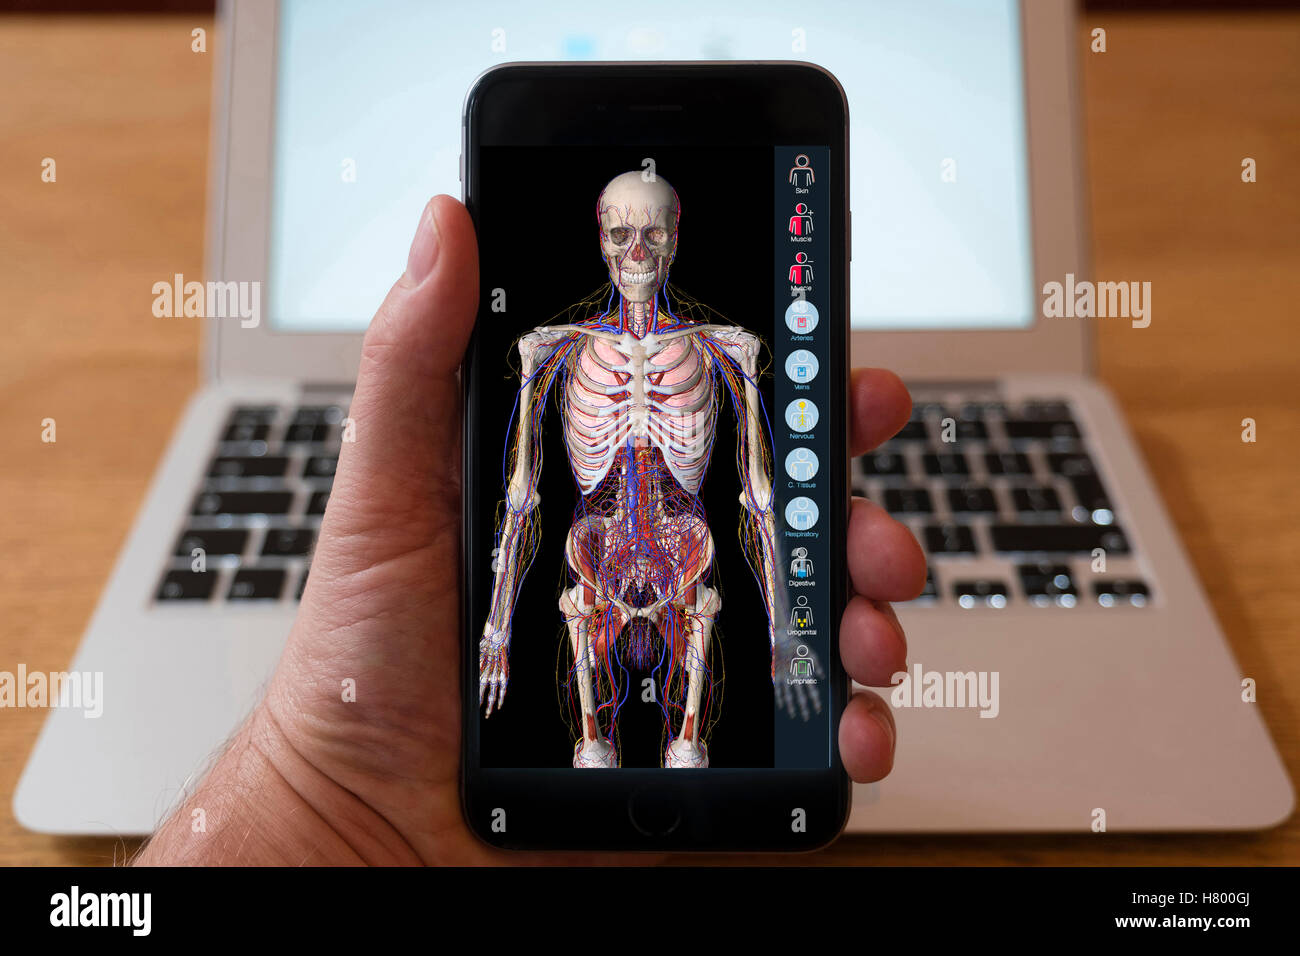 Using iPhone smartphone to display anatomy education app of human body. - Stock Image